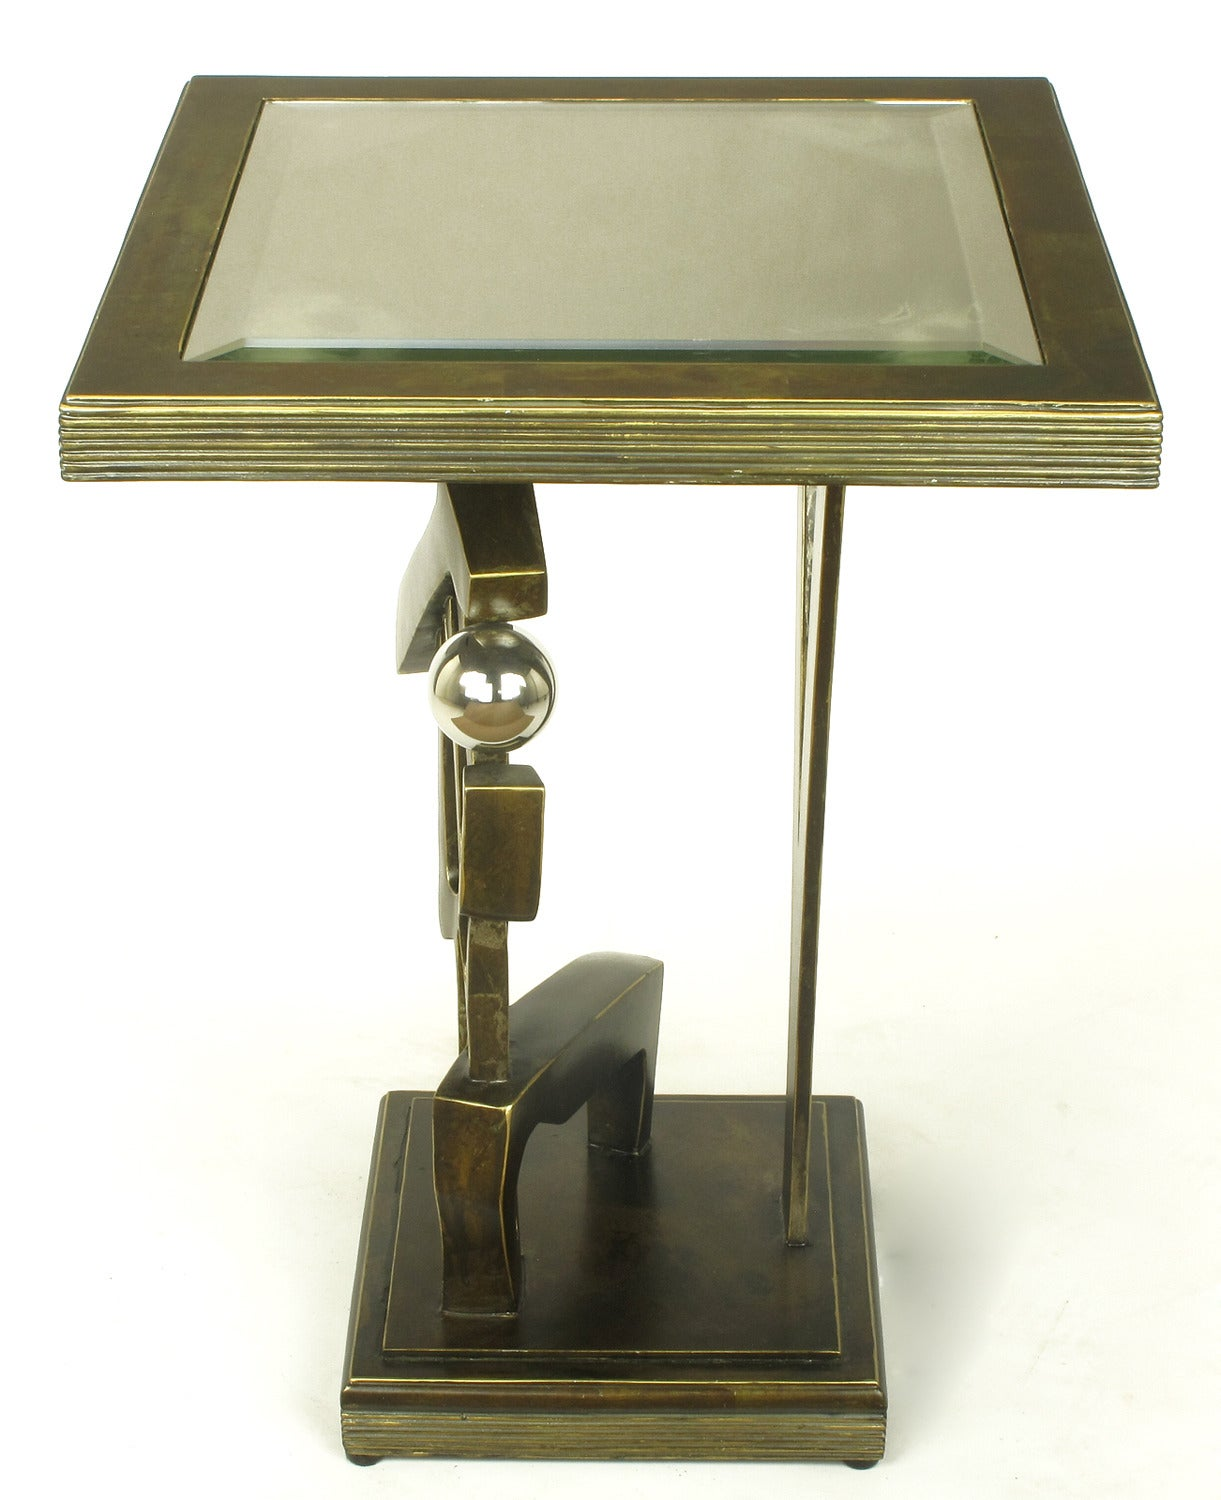 Bronzed Metal and Resin Artisan Sculpture Side Table with Chrome Ball In Excellent Condition For Sale In Chicago, IL